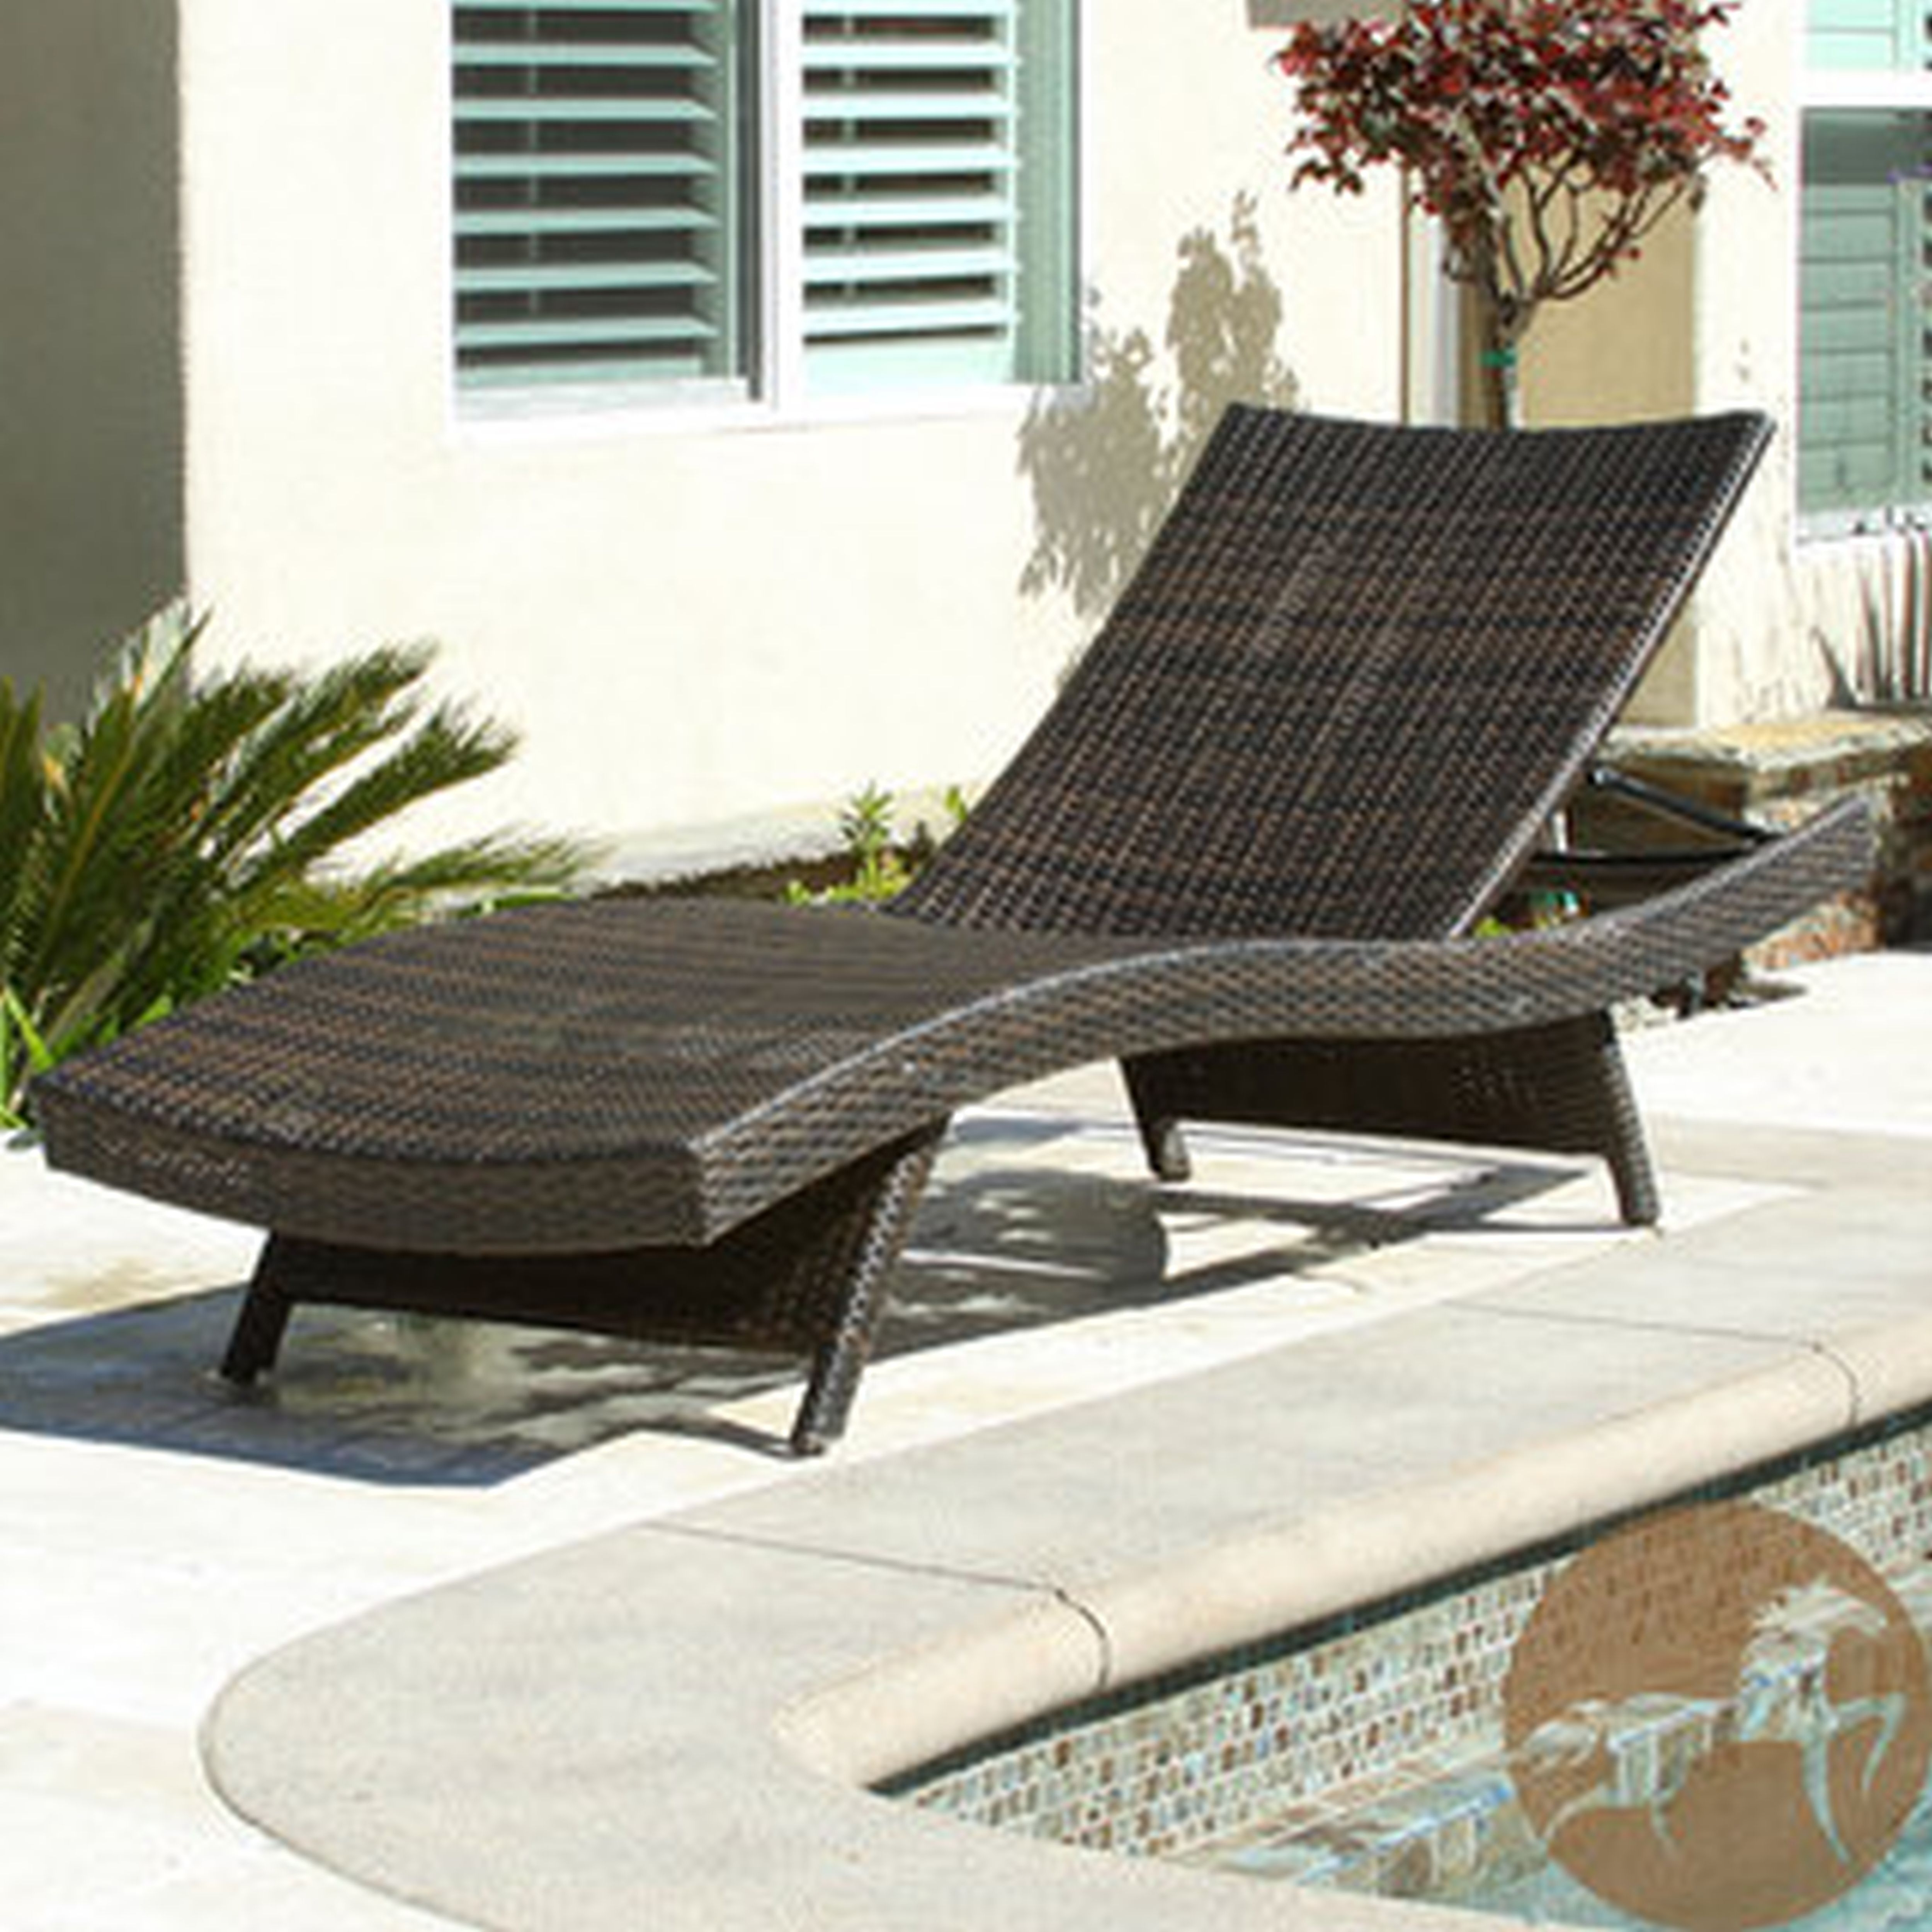 Chaise Lounge Chairs For Outdoor With Regard To Recent Convertible Chair : Cushions Rattan Chair Cushions High Back Patio (View 6 of 15)